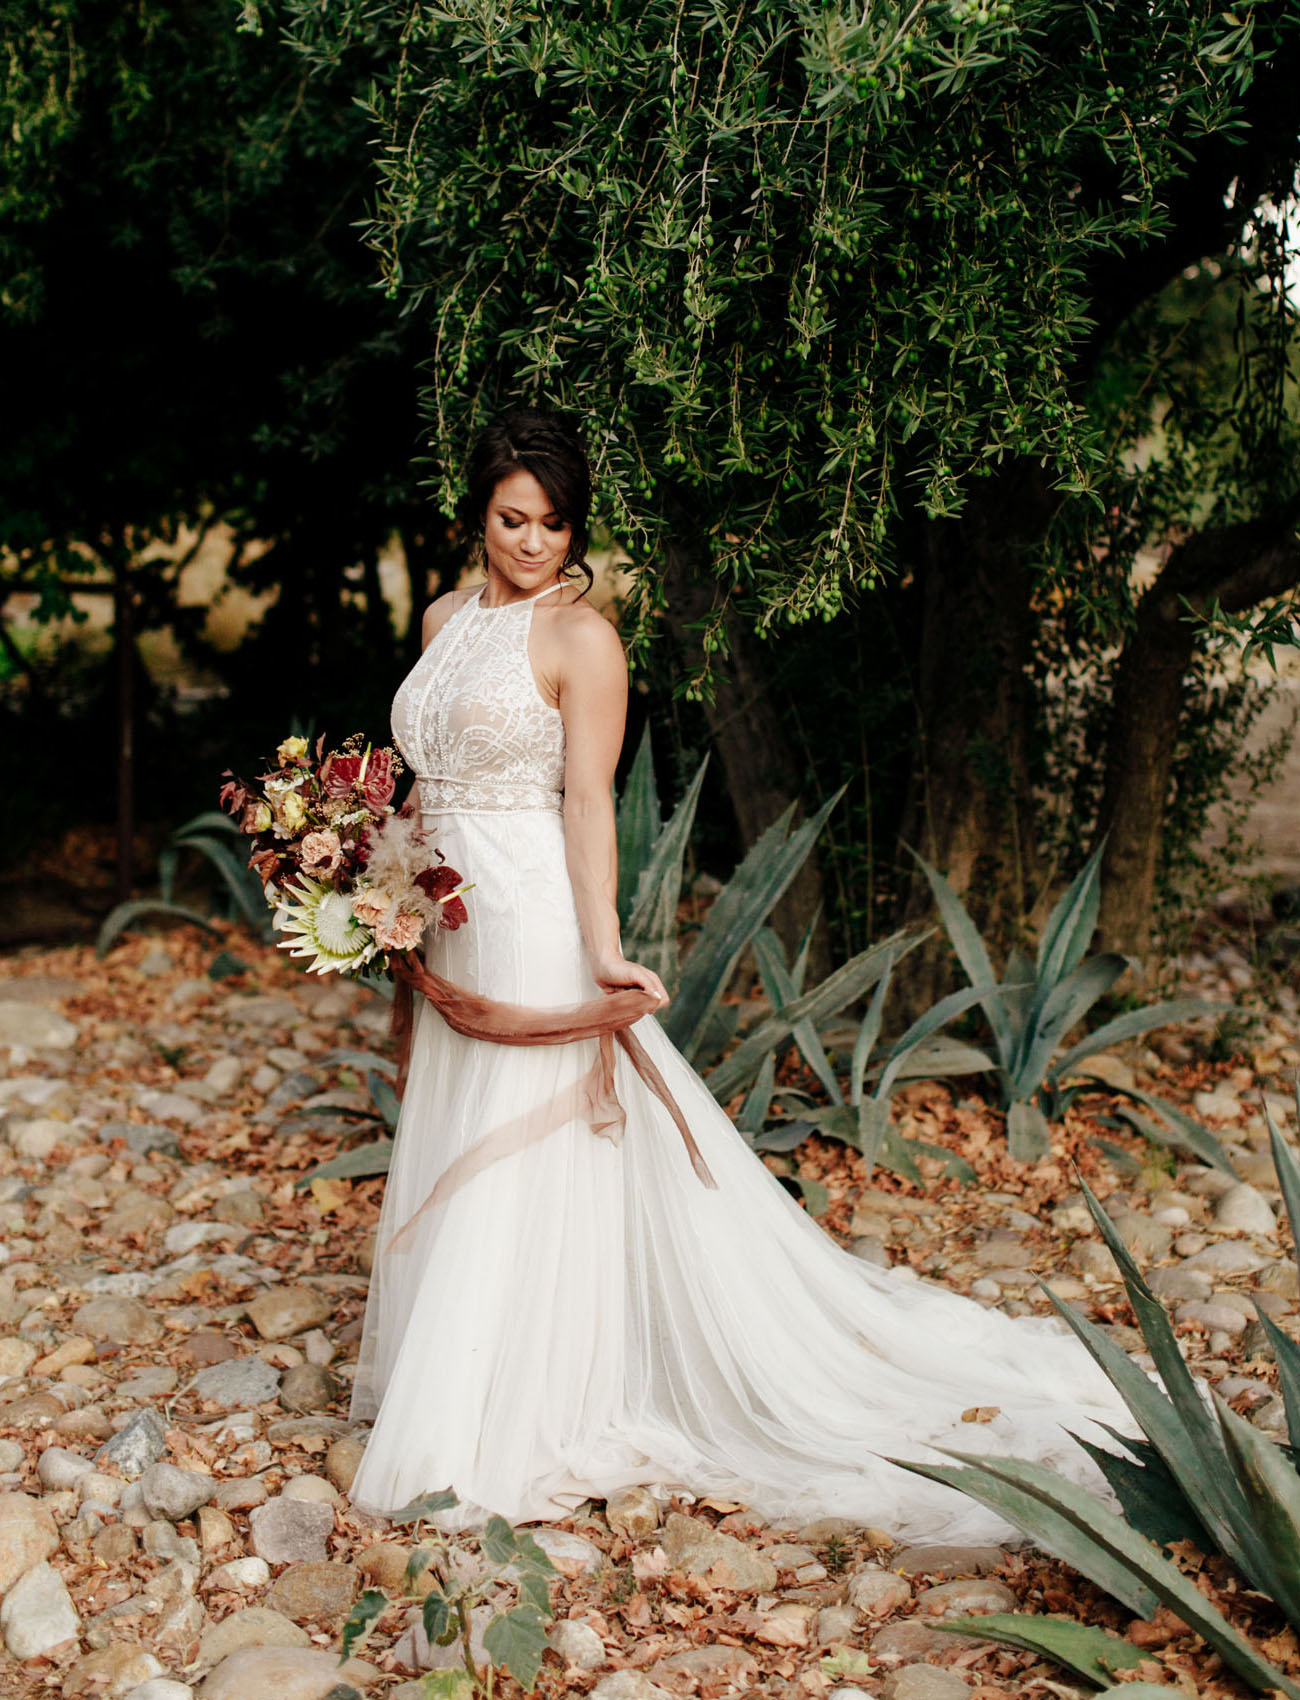 The second bride was wearing a chic A line wedding dress with a lace bodice and a halter neckline plus a train